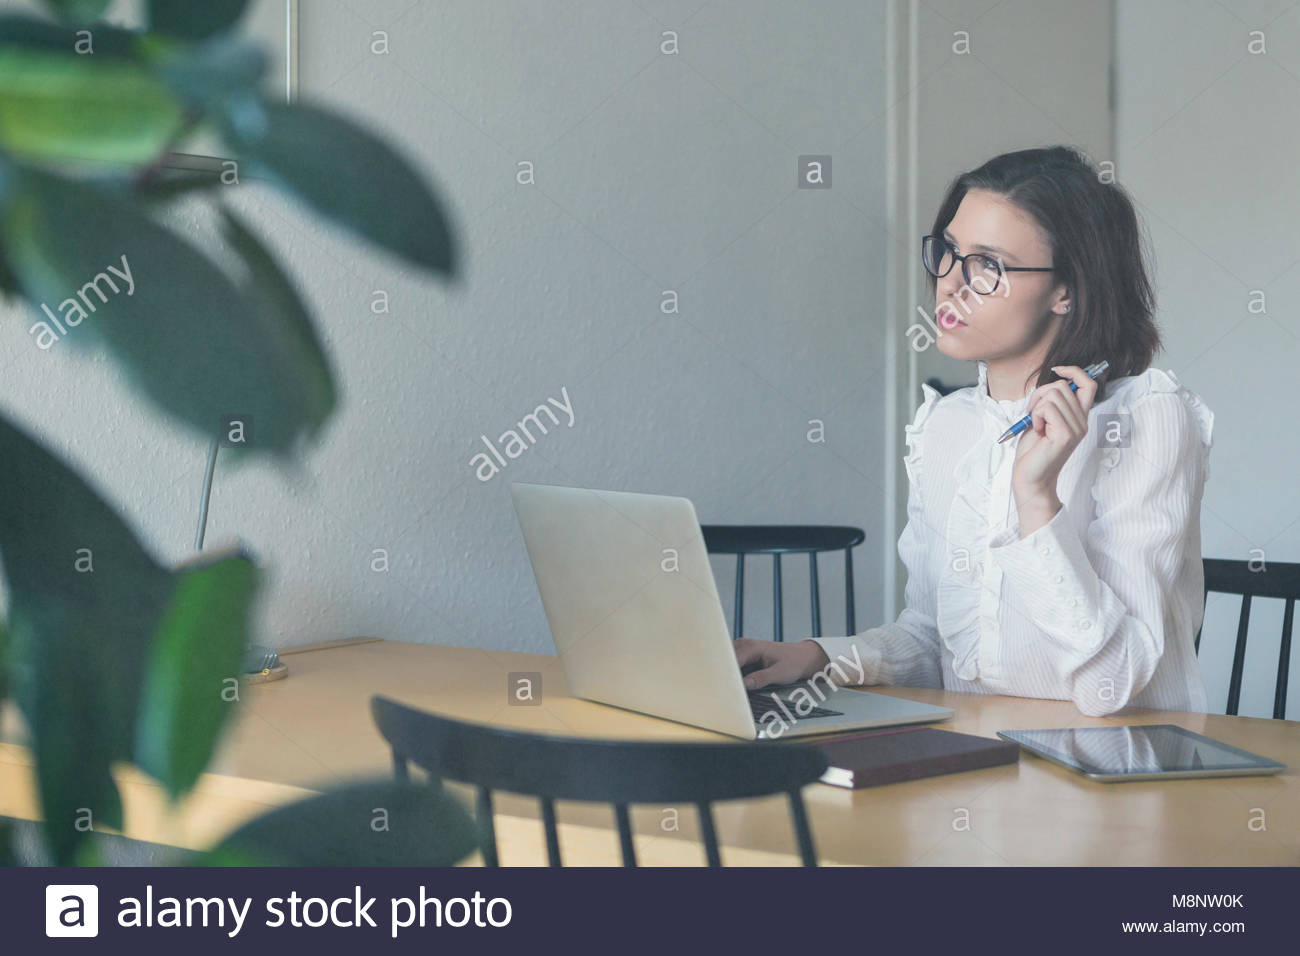 Young female entrepreneur working from home seated in a home office at a wooden table typing on a laptop computer - Stock Image